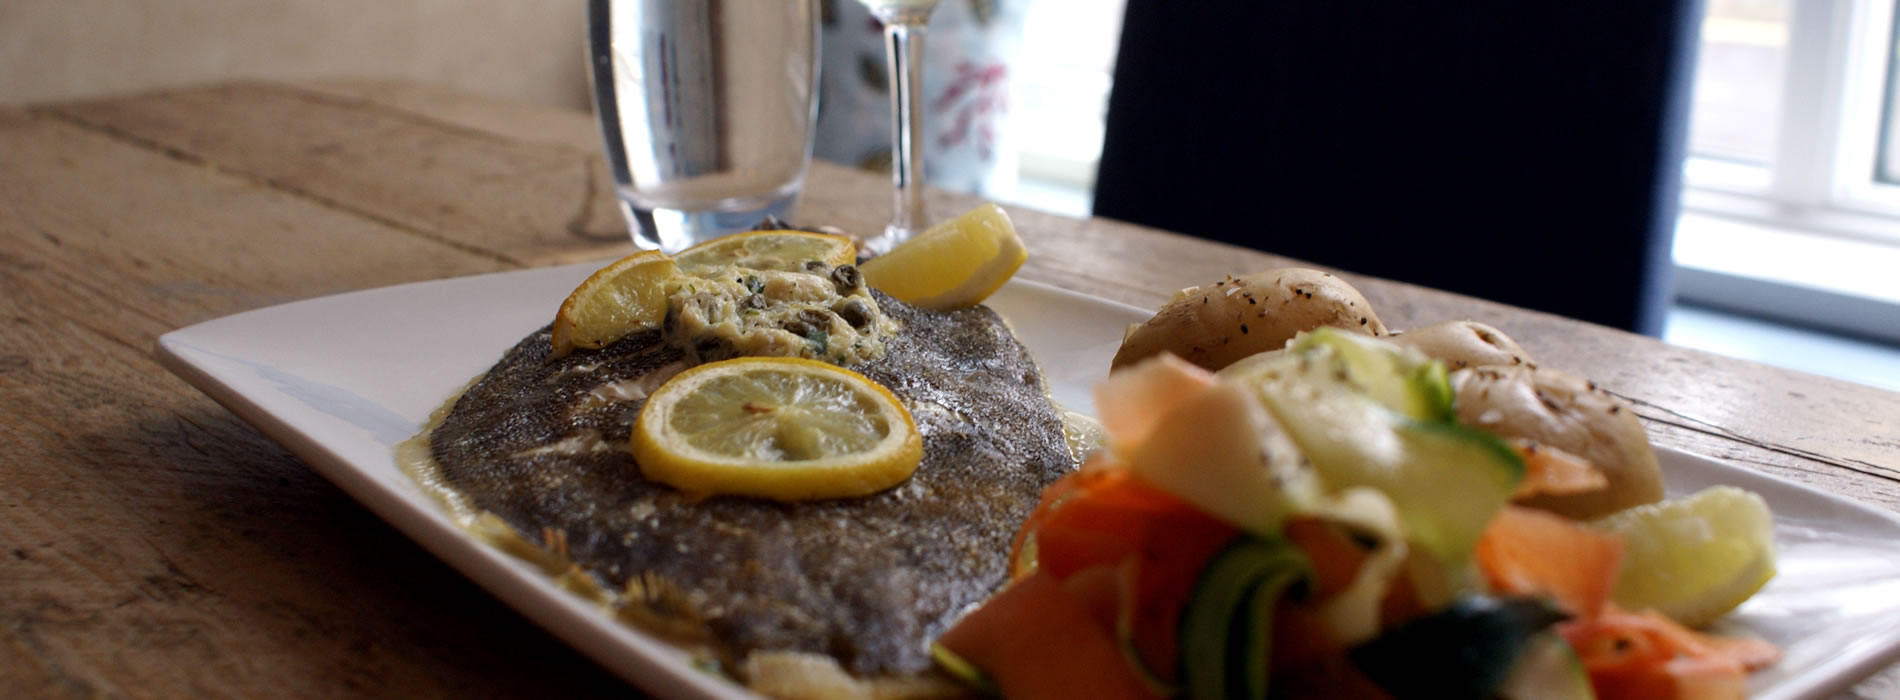 Dover Sole and vegetables on plate